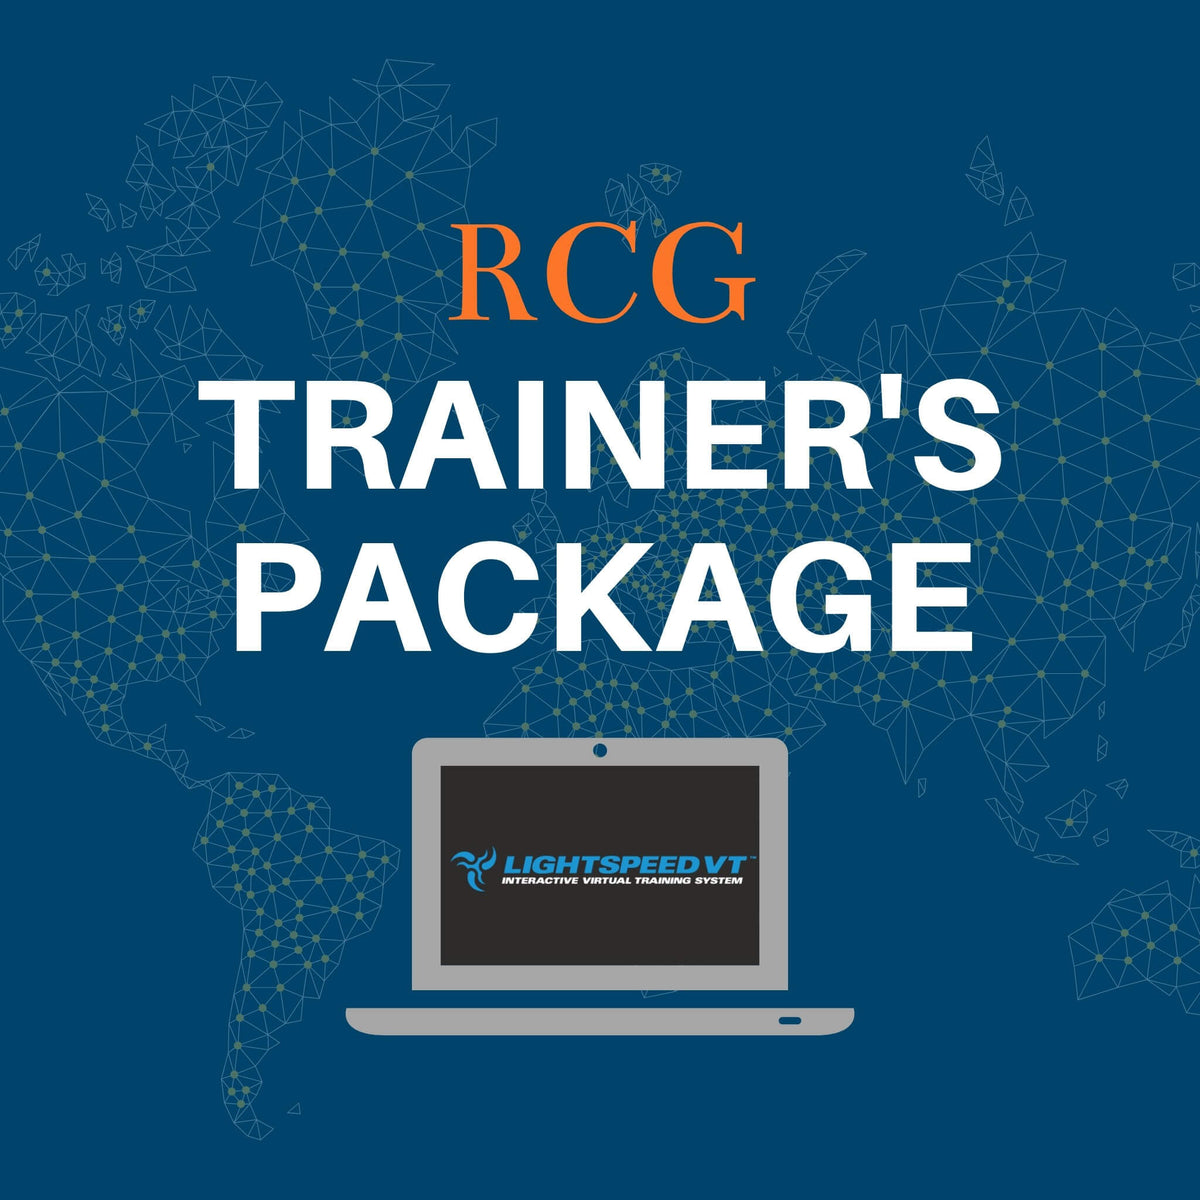 RCG Trainer's Media Package: Request A Quote